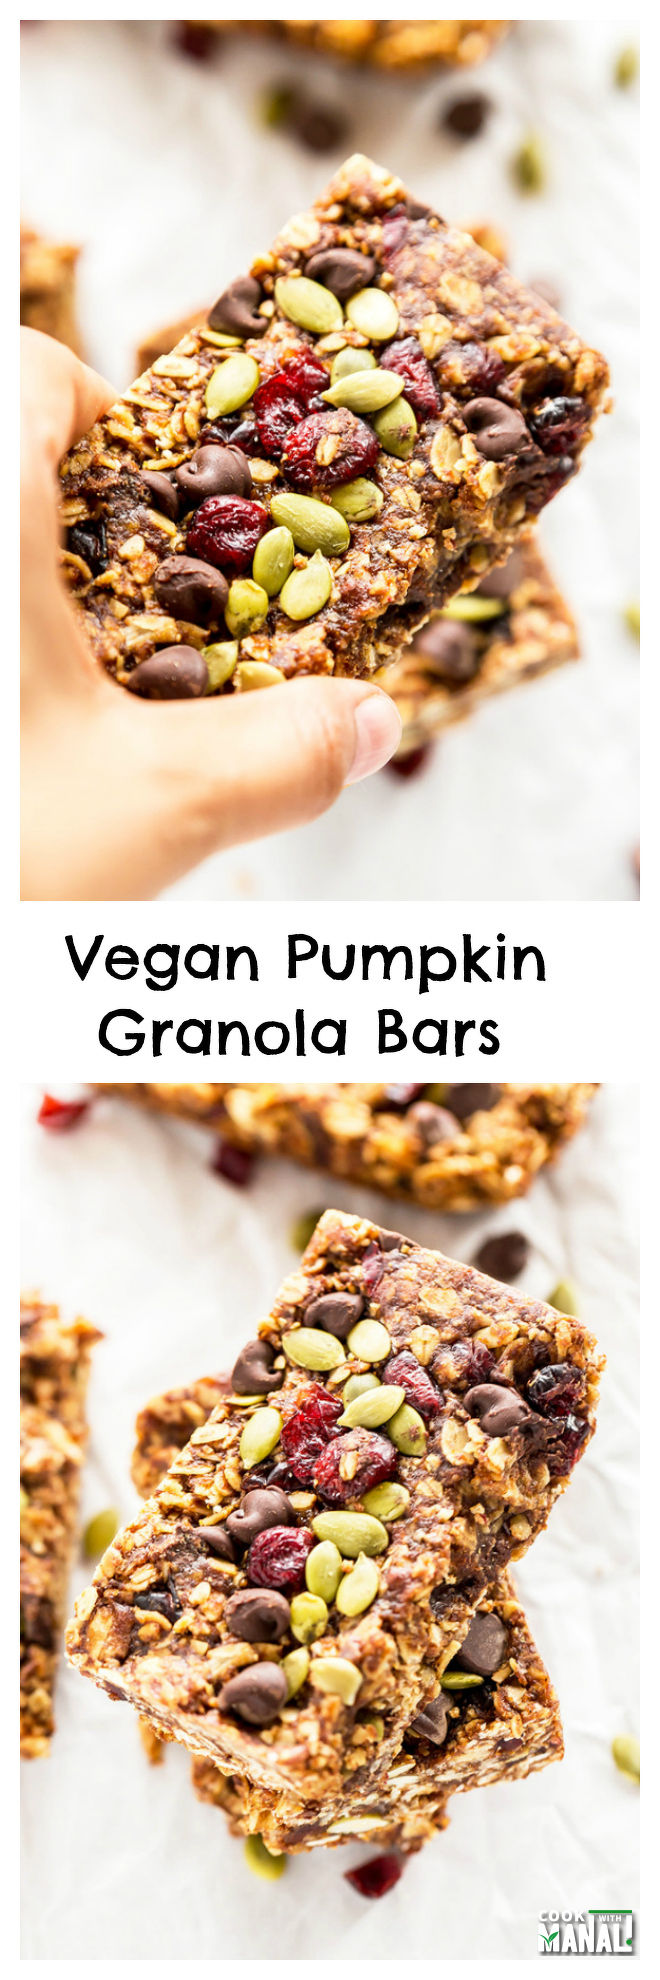 pumpkin-granola-bars-collage